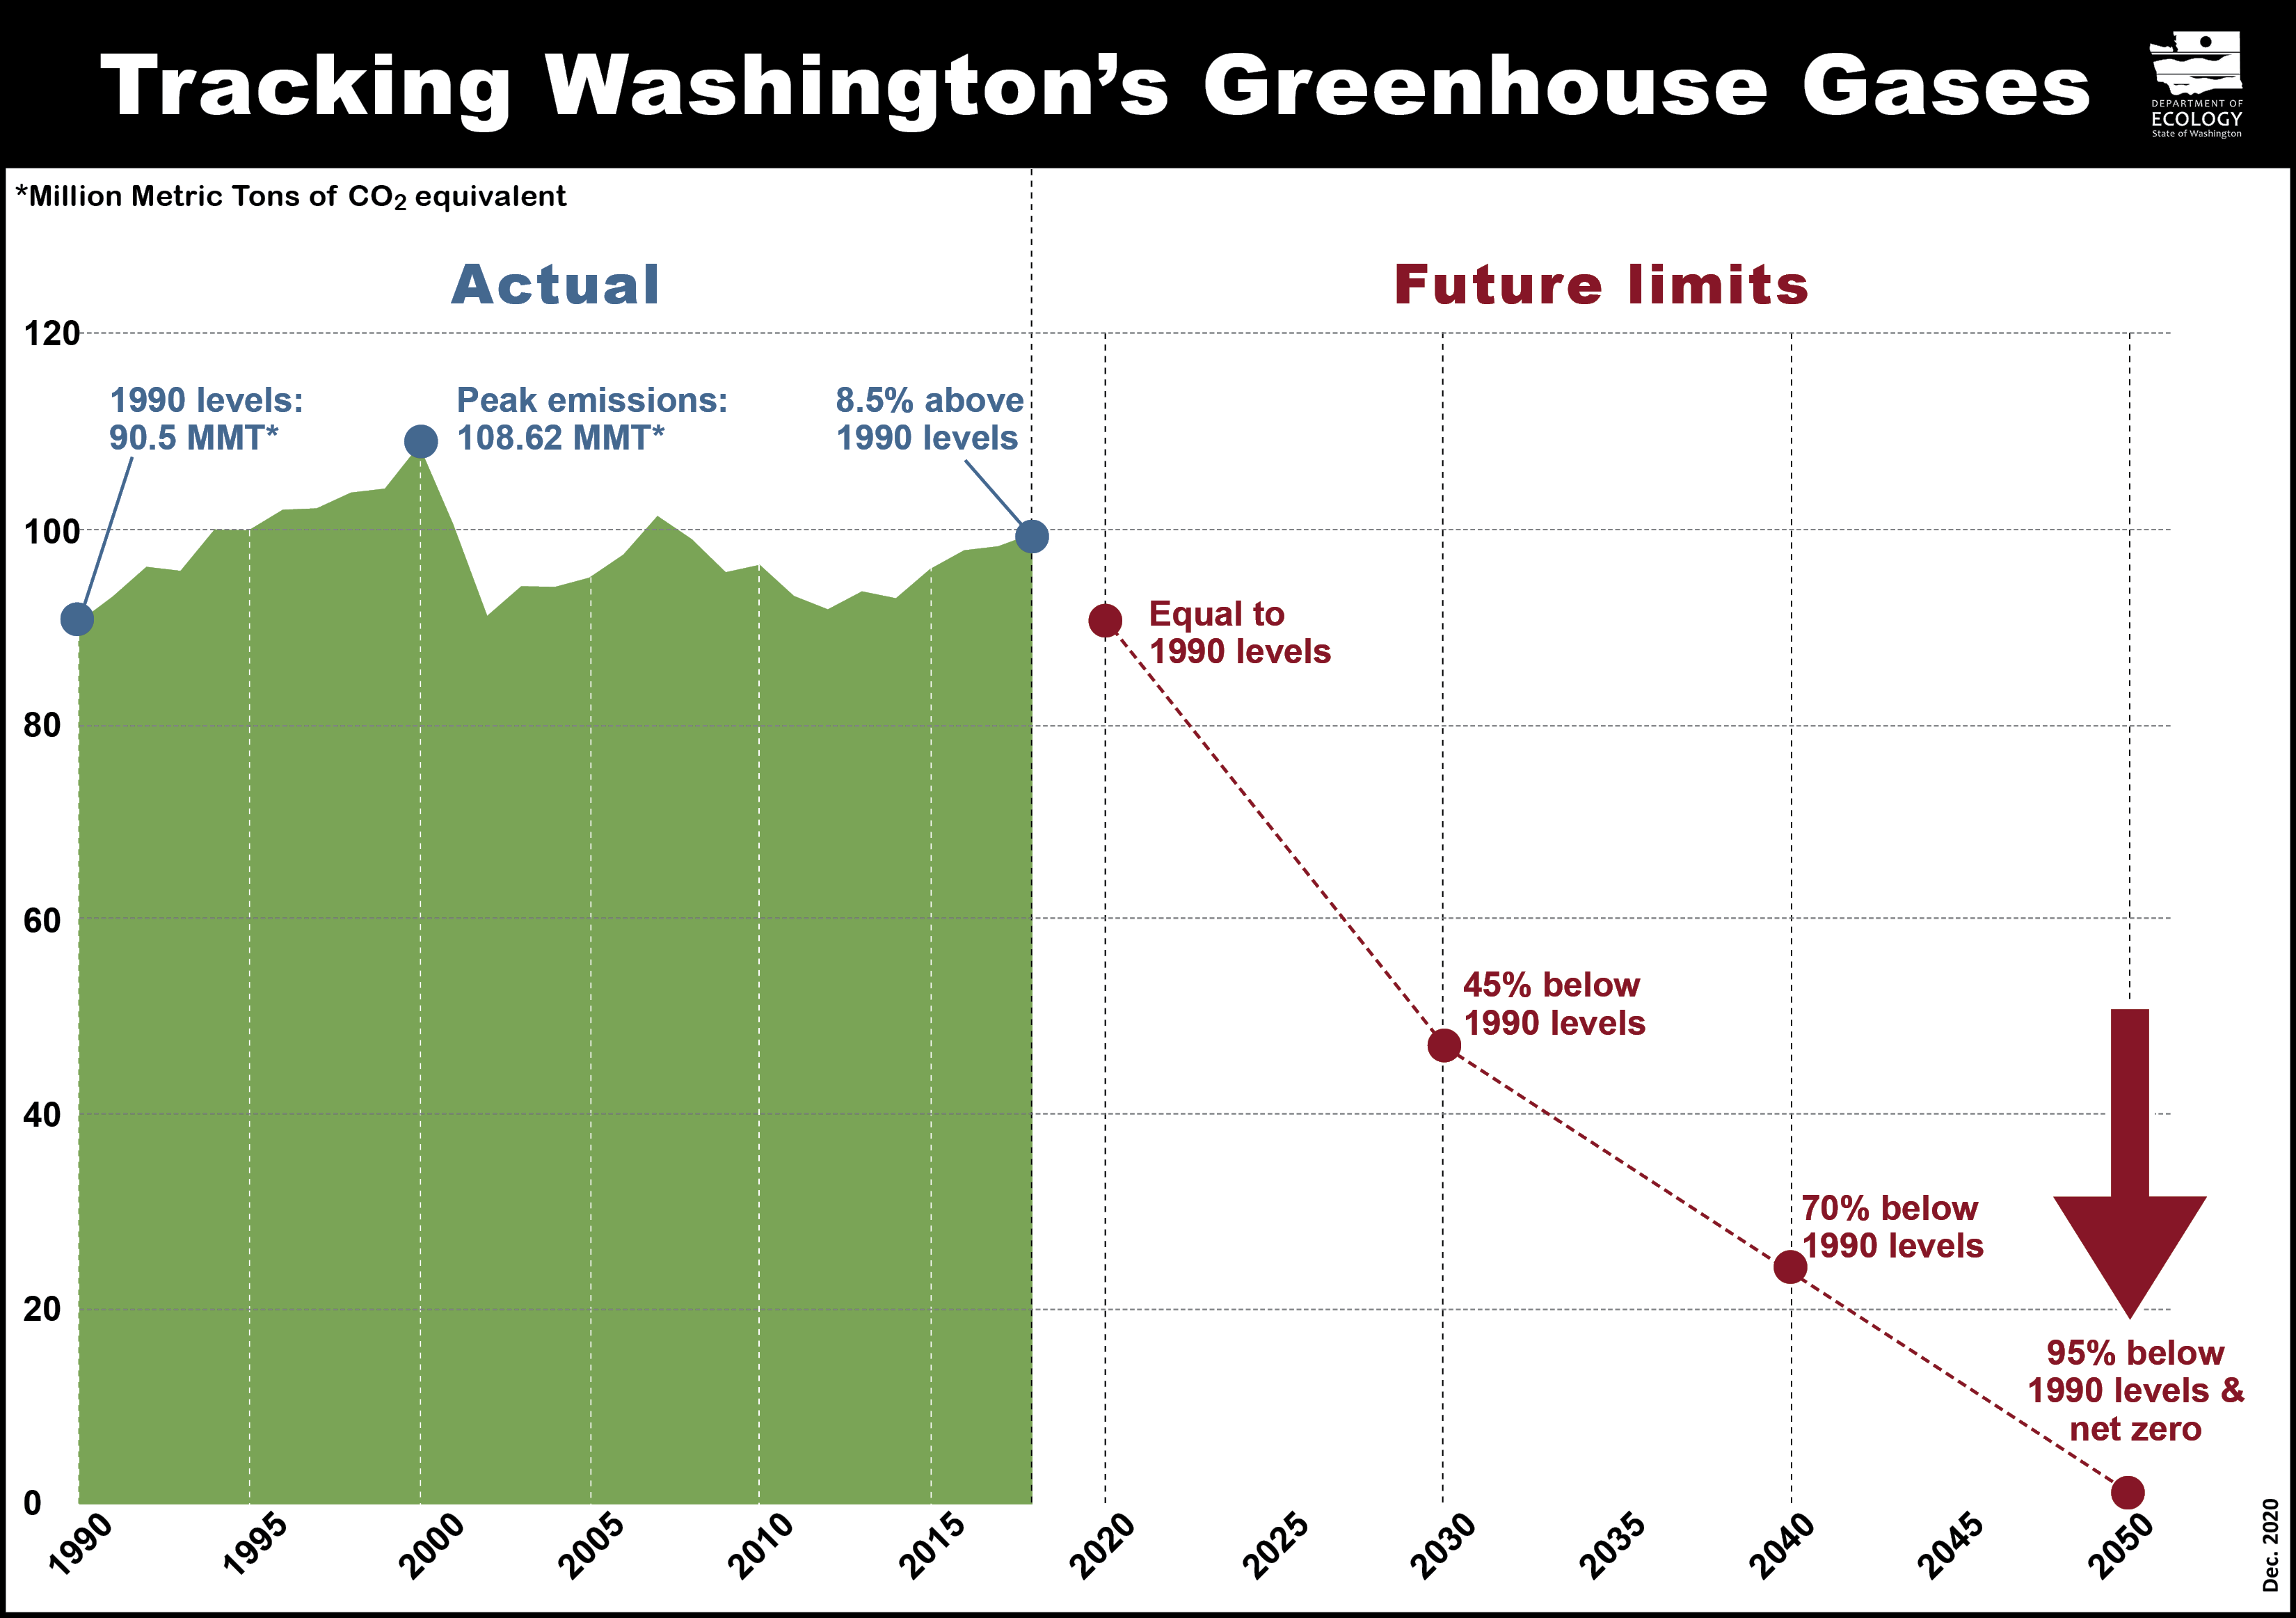 Graph showing greenhouse gas emissions in Washington from 1990-2018, and the future emissions limits.